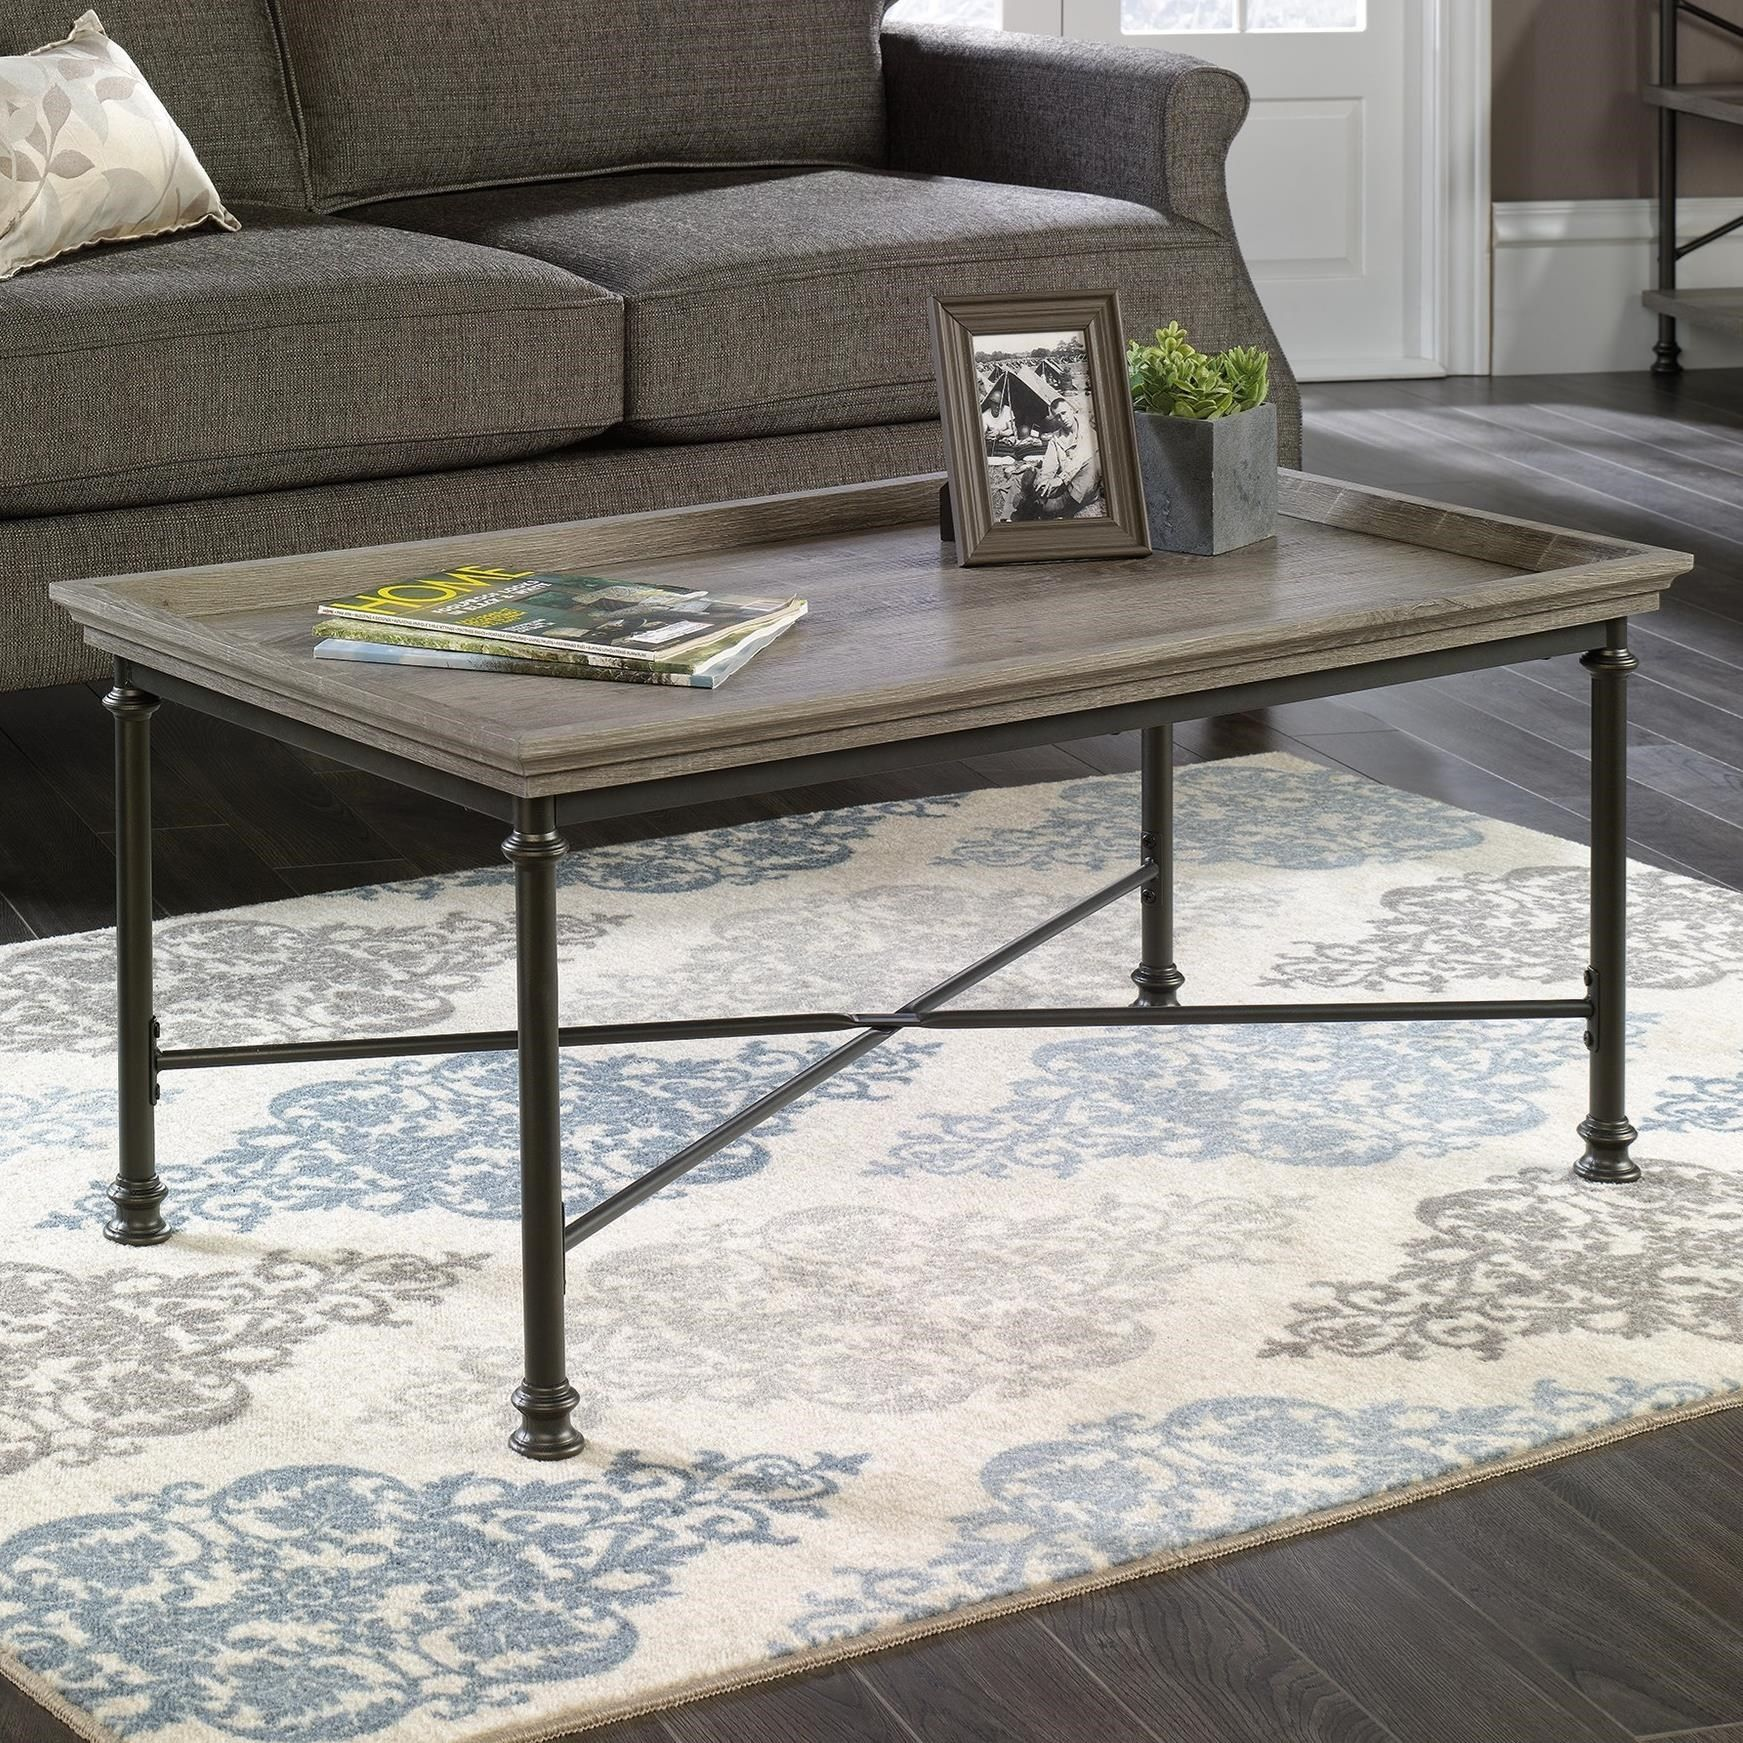 C Street Coffee Table By Sauder At Becker Furniture World